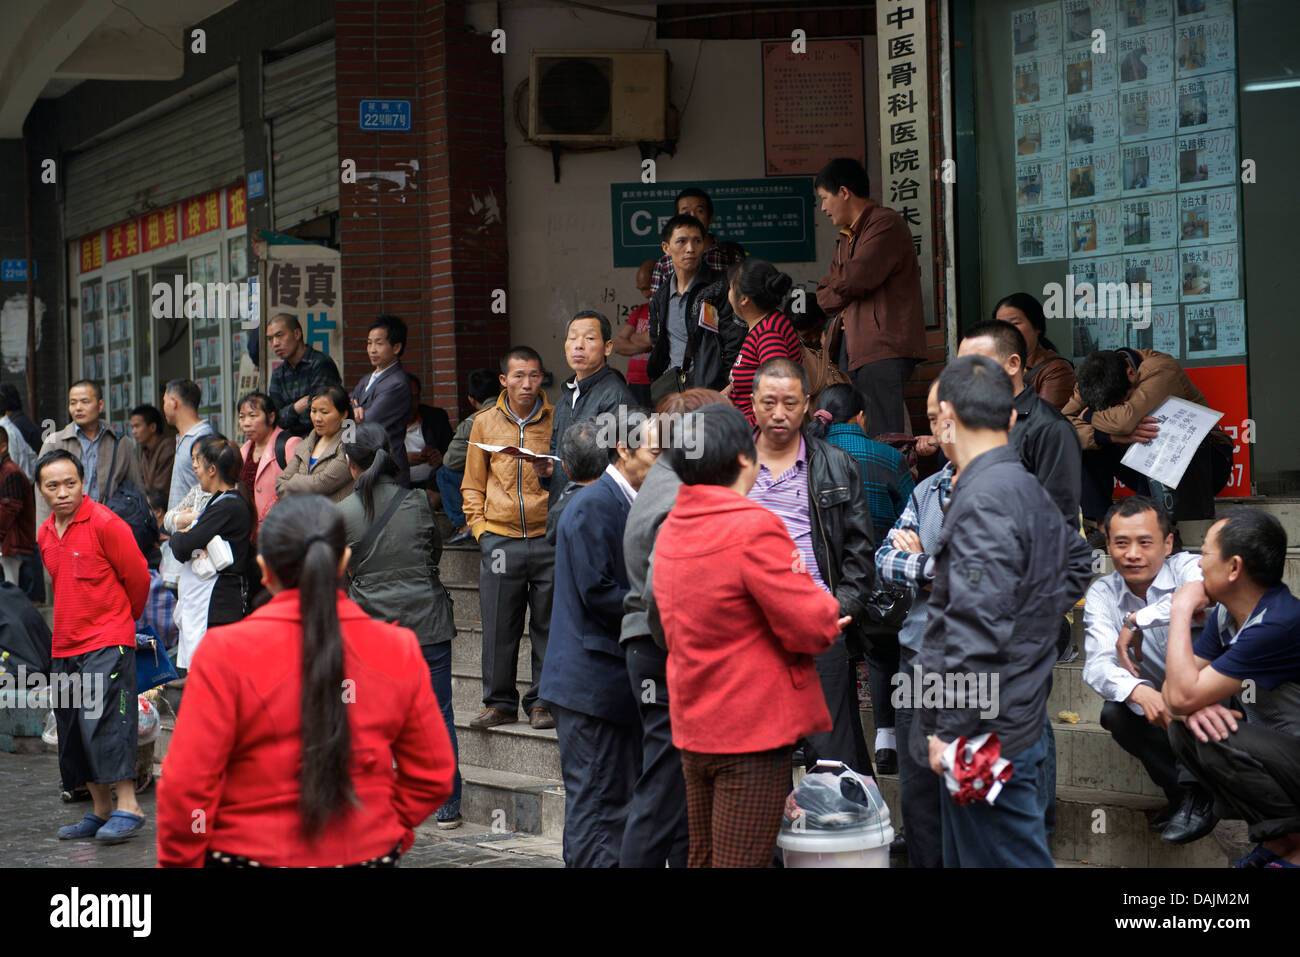 People wait job opportunities in a labor market in Chongqing, China. 09-May-2013 - Stock Image